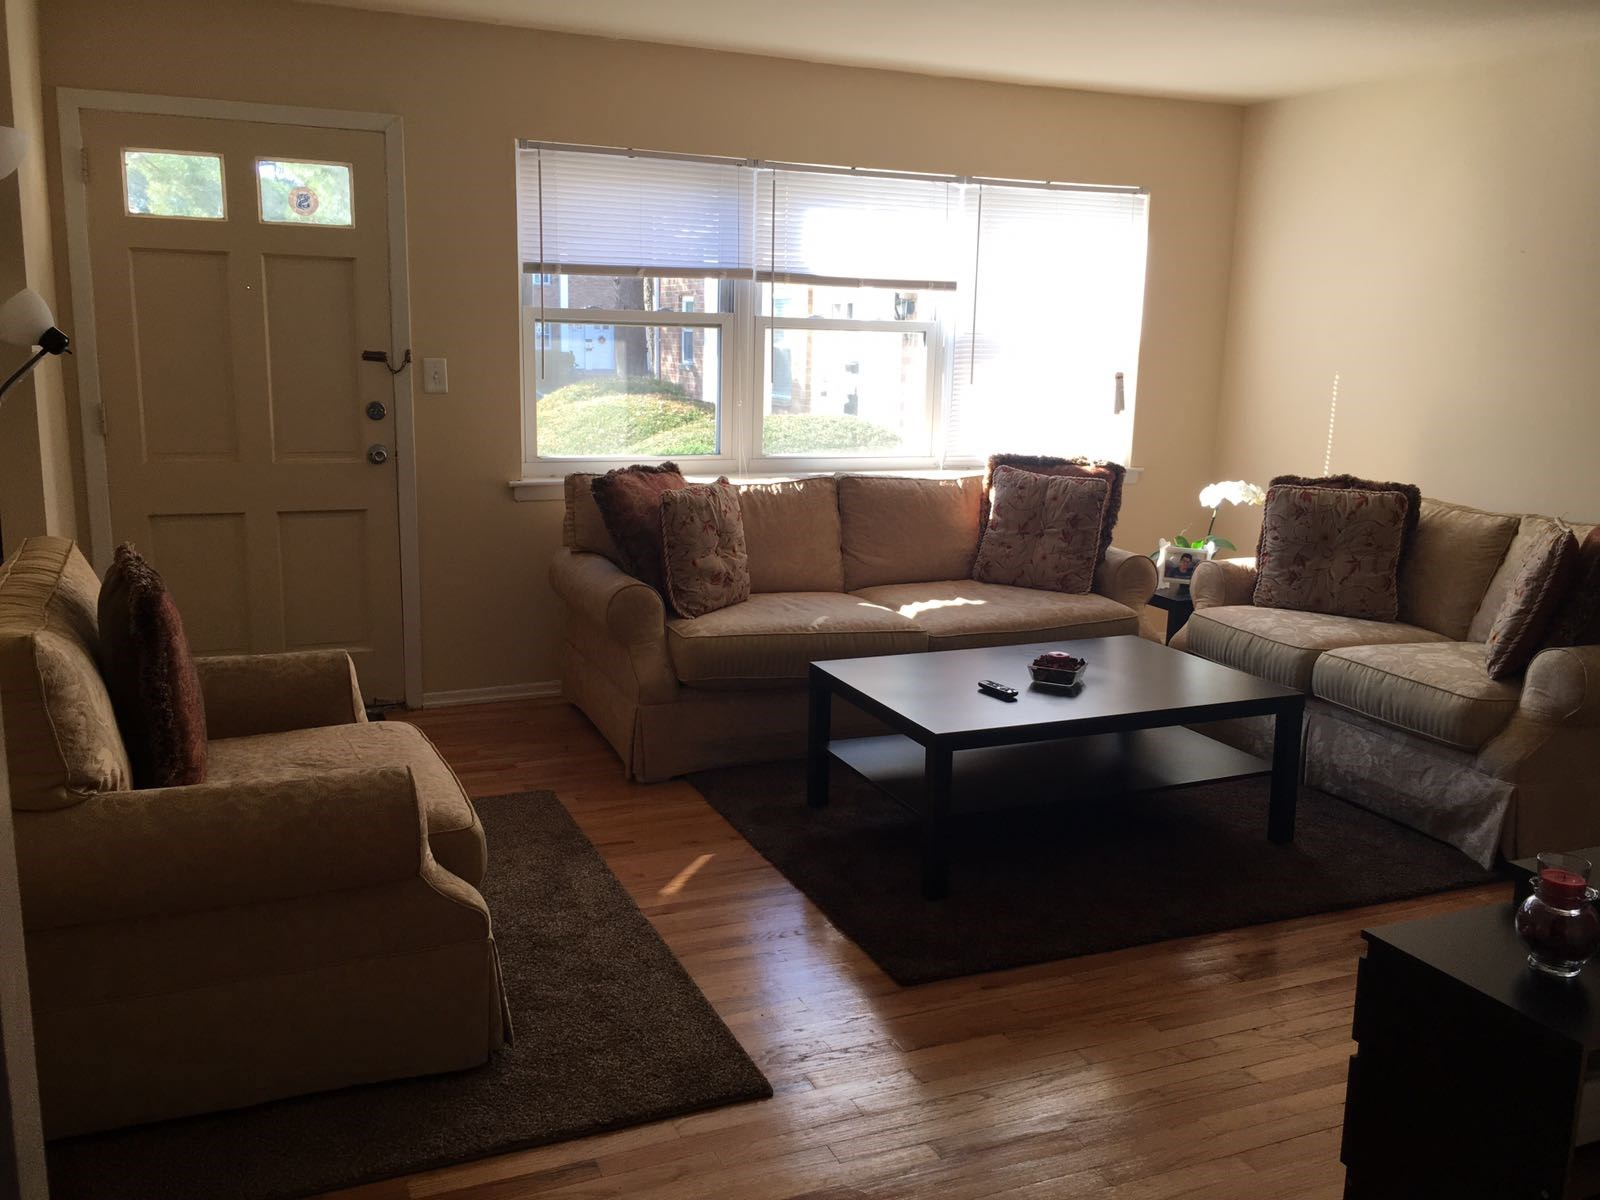 Looking For Roommate To Share 1 Bedroom Apartment In